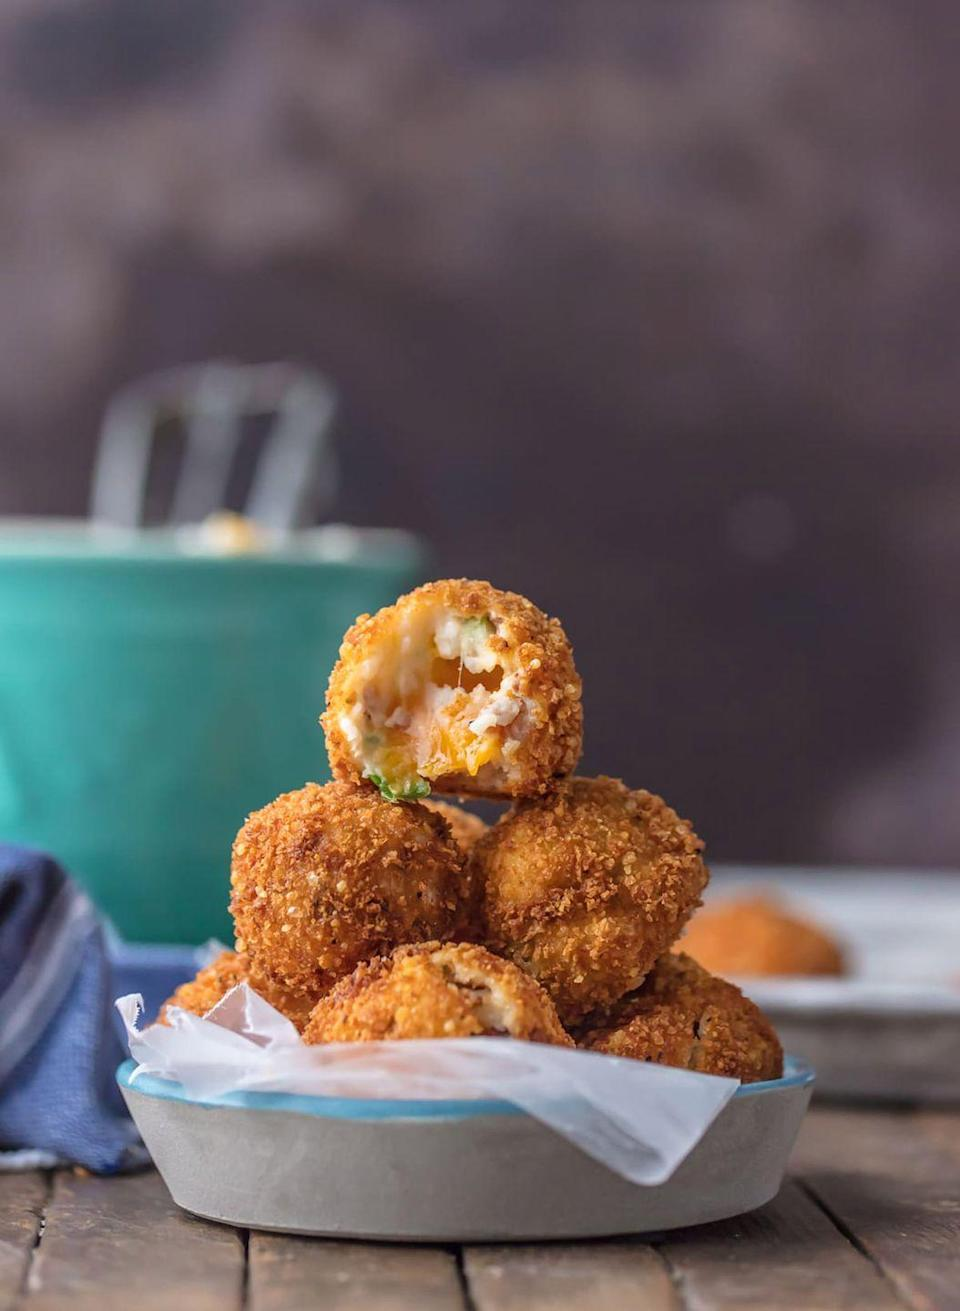 """<p>Who <em>wouldn't</em> love a fried mashed potato bite loaded with bacon and cheese?</p><p><strong>Get the recipe at <a href=""""https://www.thecookierookie.com/deep-fried-loaded-mashed-potato-bites/"""" rel=""""nofollow noopener"""" target=""""_blank"""" data-ylk=""""slk:The Cookie Rookie"""" class=""""link rapid-noclick-resp"""">The Cookie Rookie</a>.</strong> </p>"""